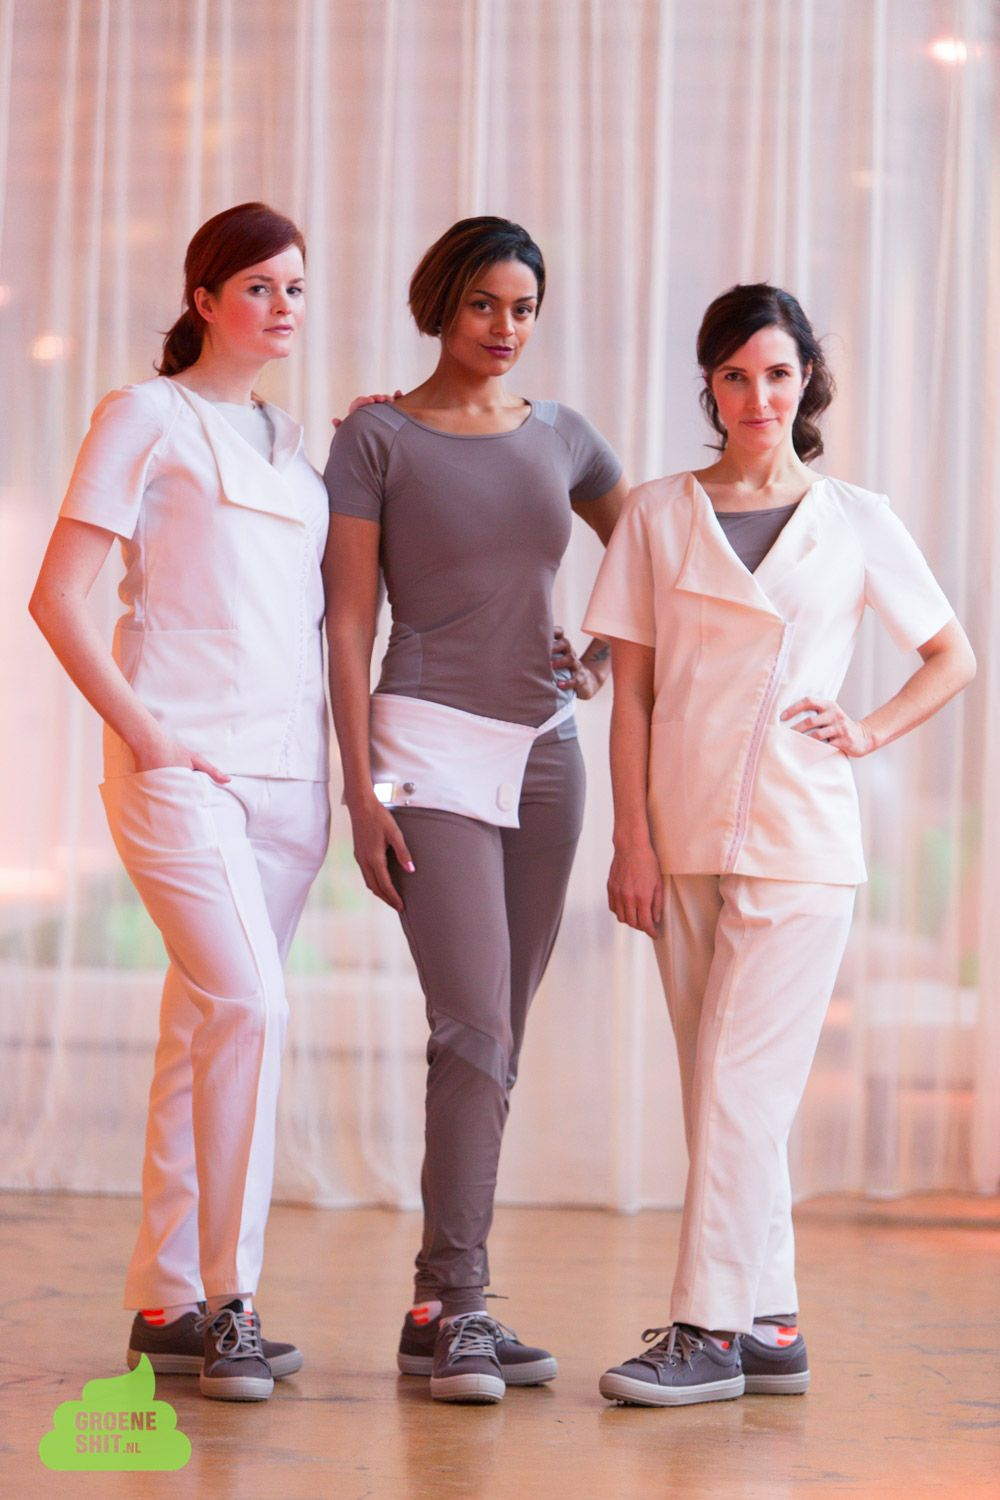 Sustainable and supportive garments for nurses